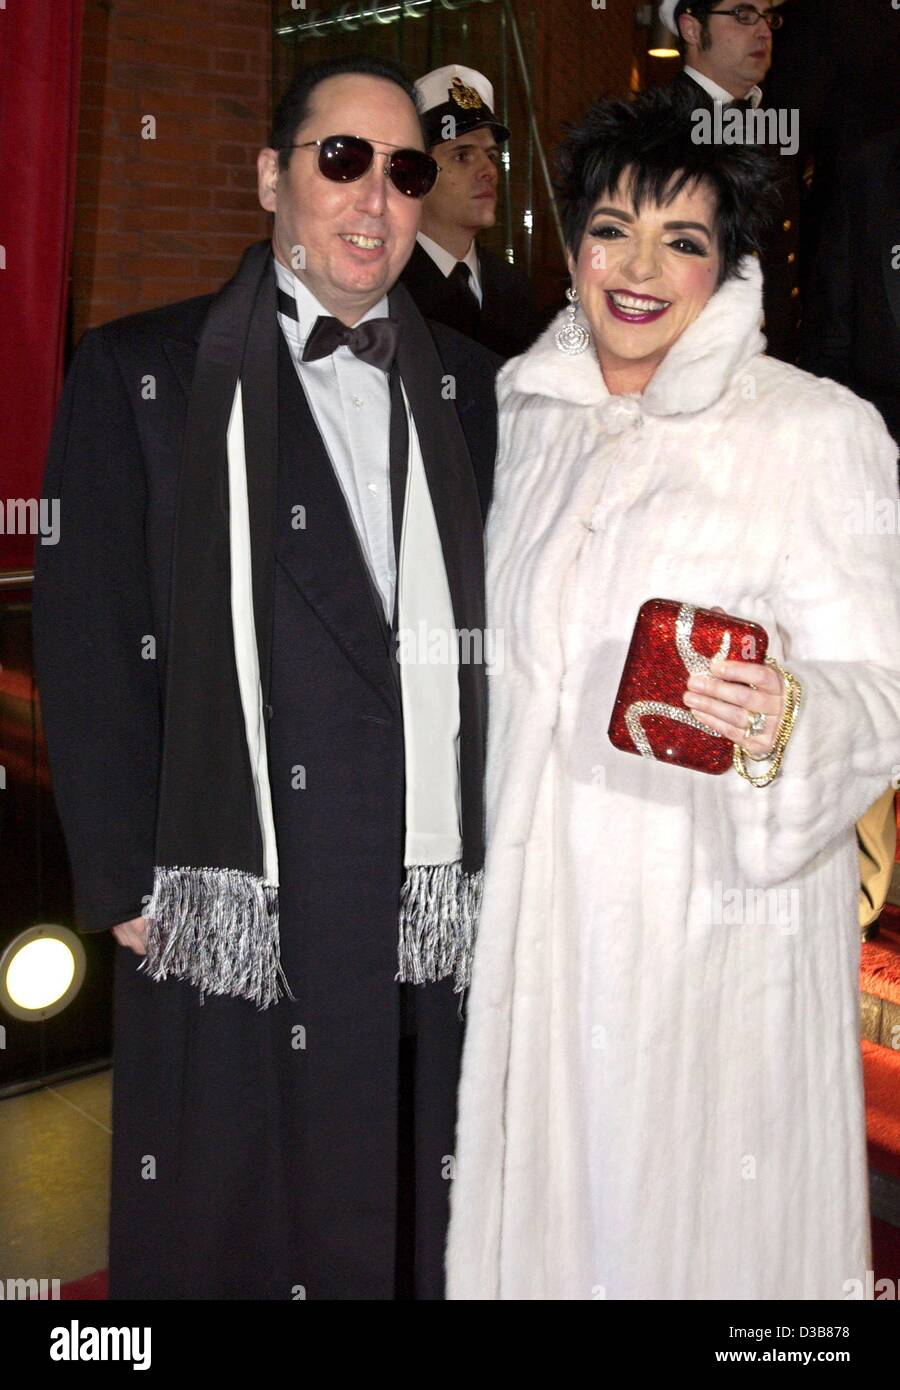 The American Actress Liza Minelli And Her Husband David Gest Arrive Stock Photo Alamy